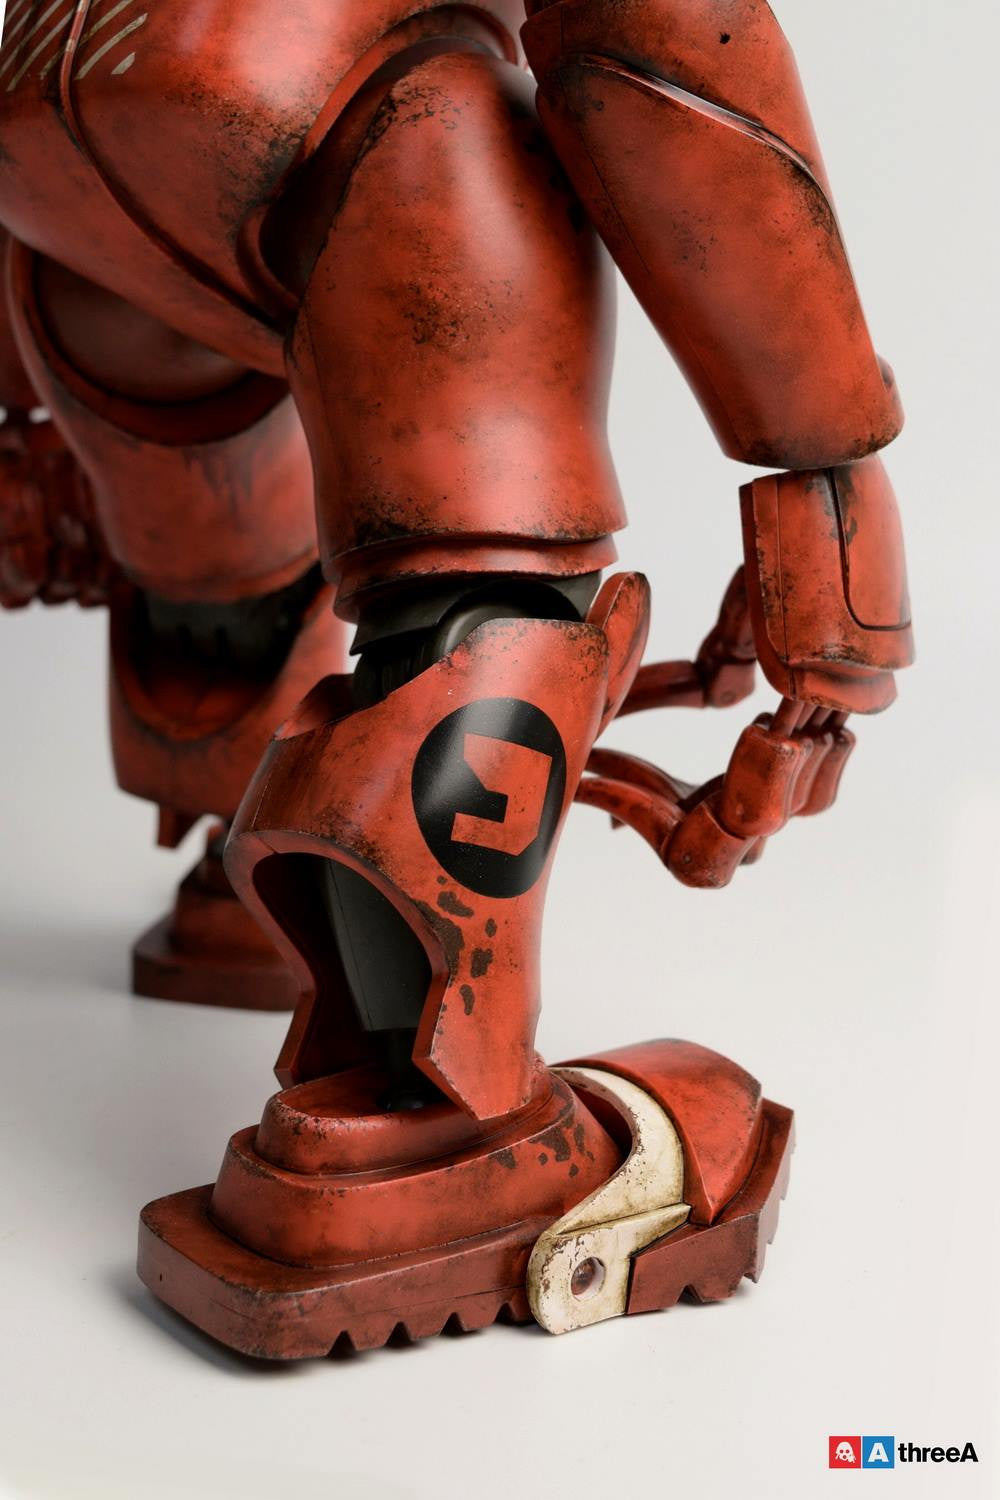 ThreeA - Evenfall - 1/6 T.O.T.E.M Thug Pugillo - Hazard Op (Red) - Marvelous Toys - 9